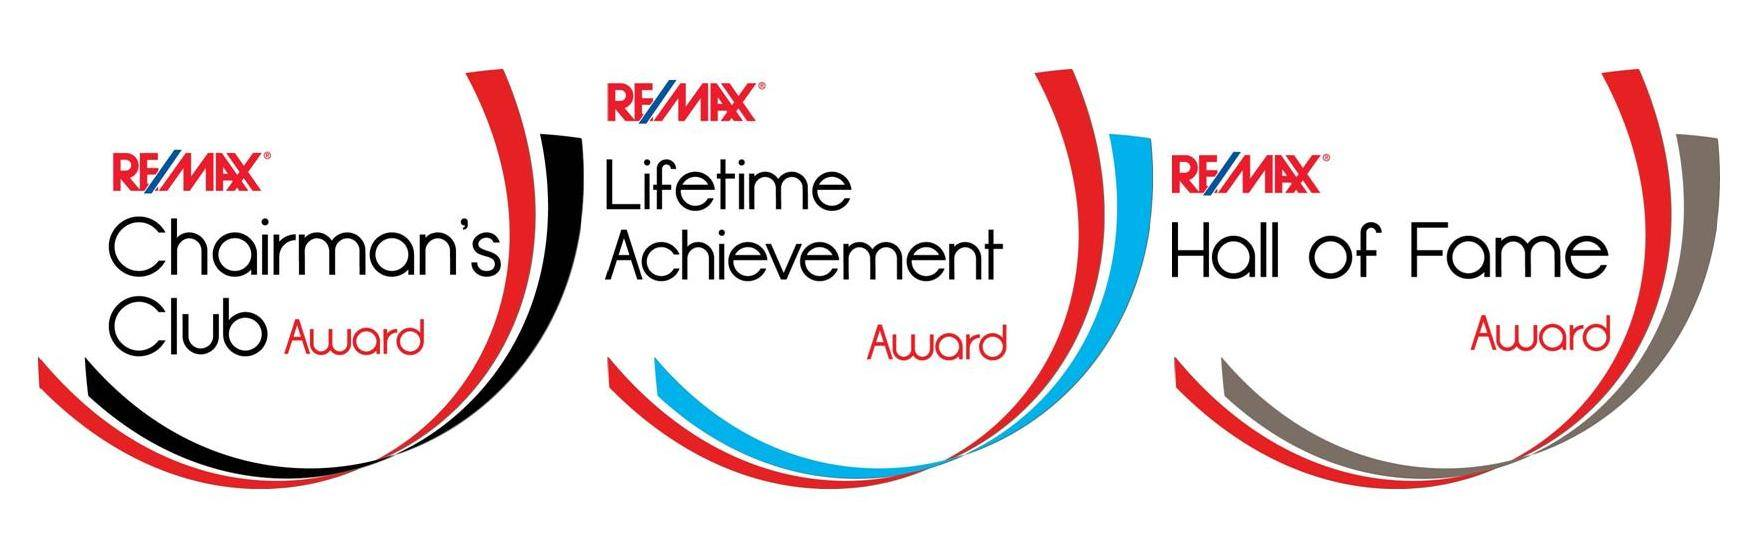 REMAX Awards